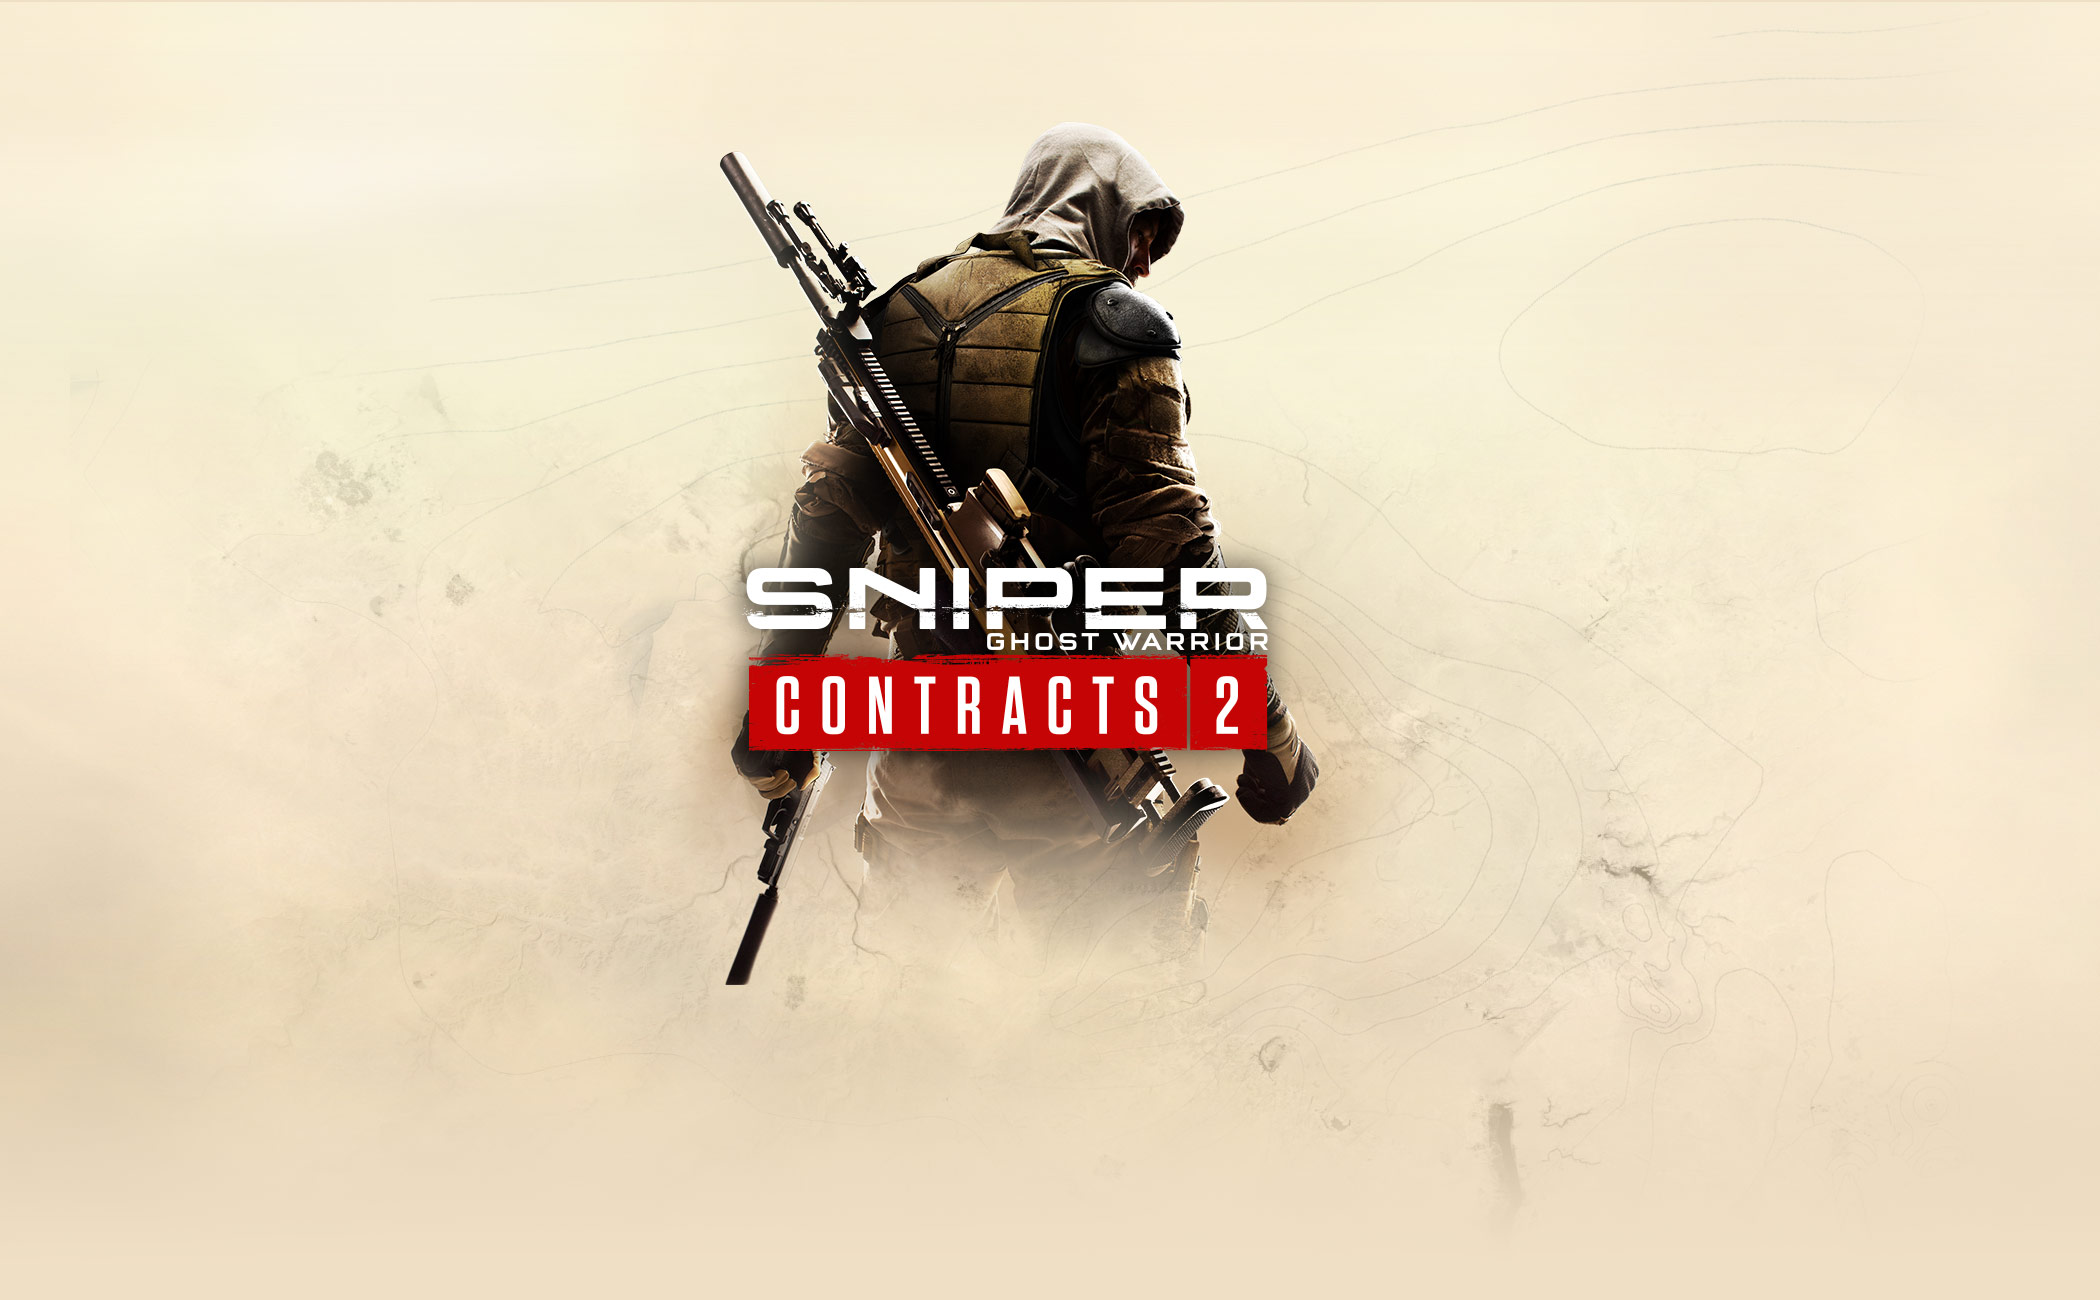 Contracts 2